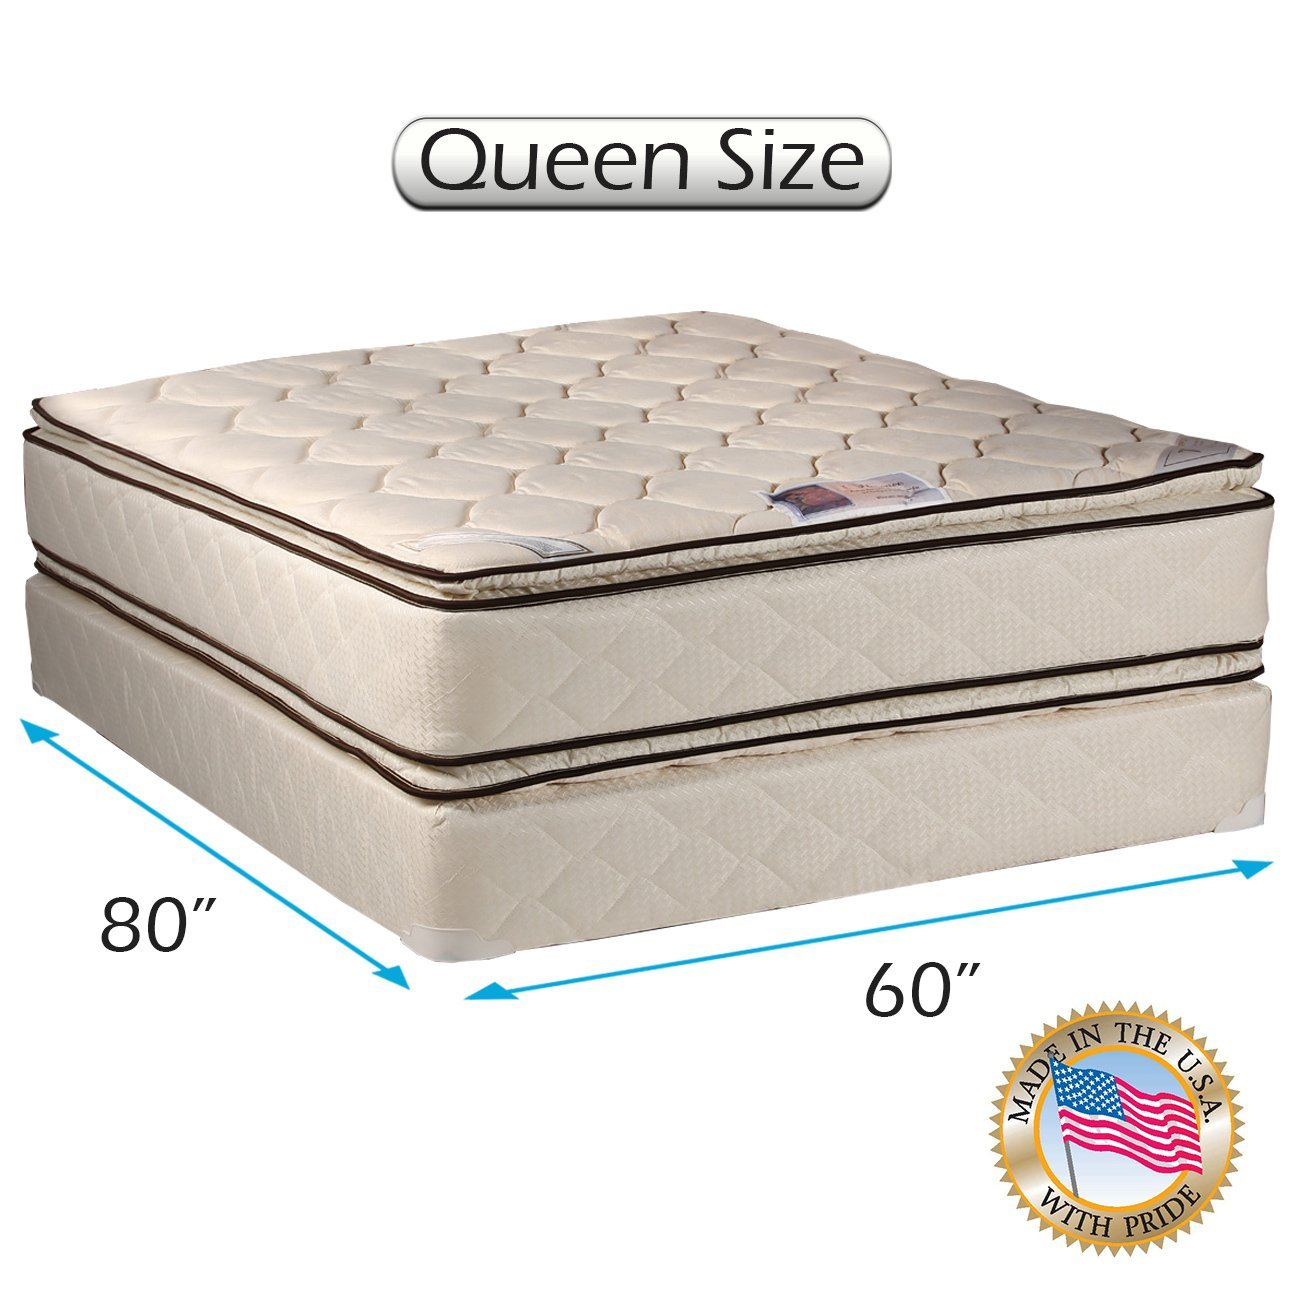 Coil Comfort Pillow Top Queen Mattress set with Bed Frame Included 2-Sided - Sleep System with Enhanced Cushion Support, Fully Assembled, Orthopedic Type, Longlasting by Dream Solutions USA